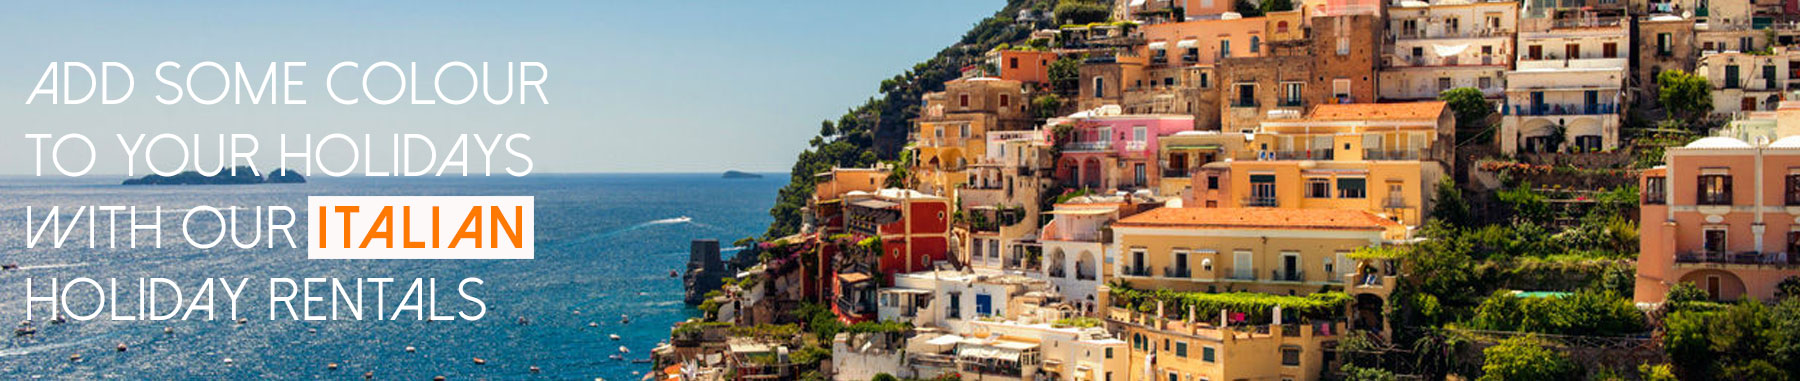 Search for holiday rental properties in Italy